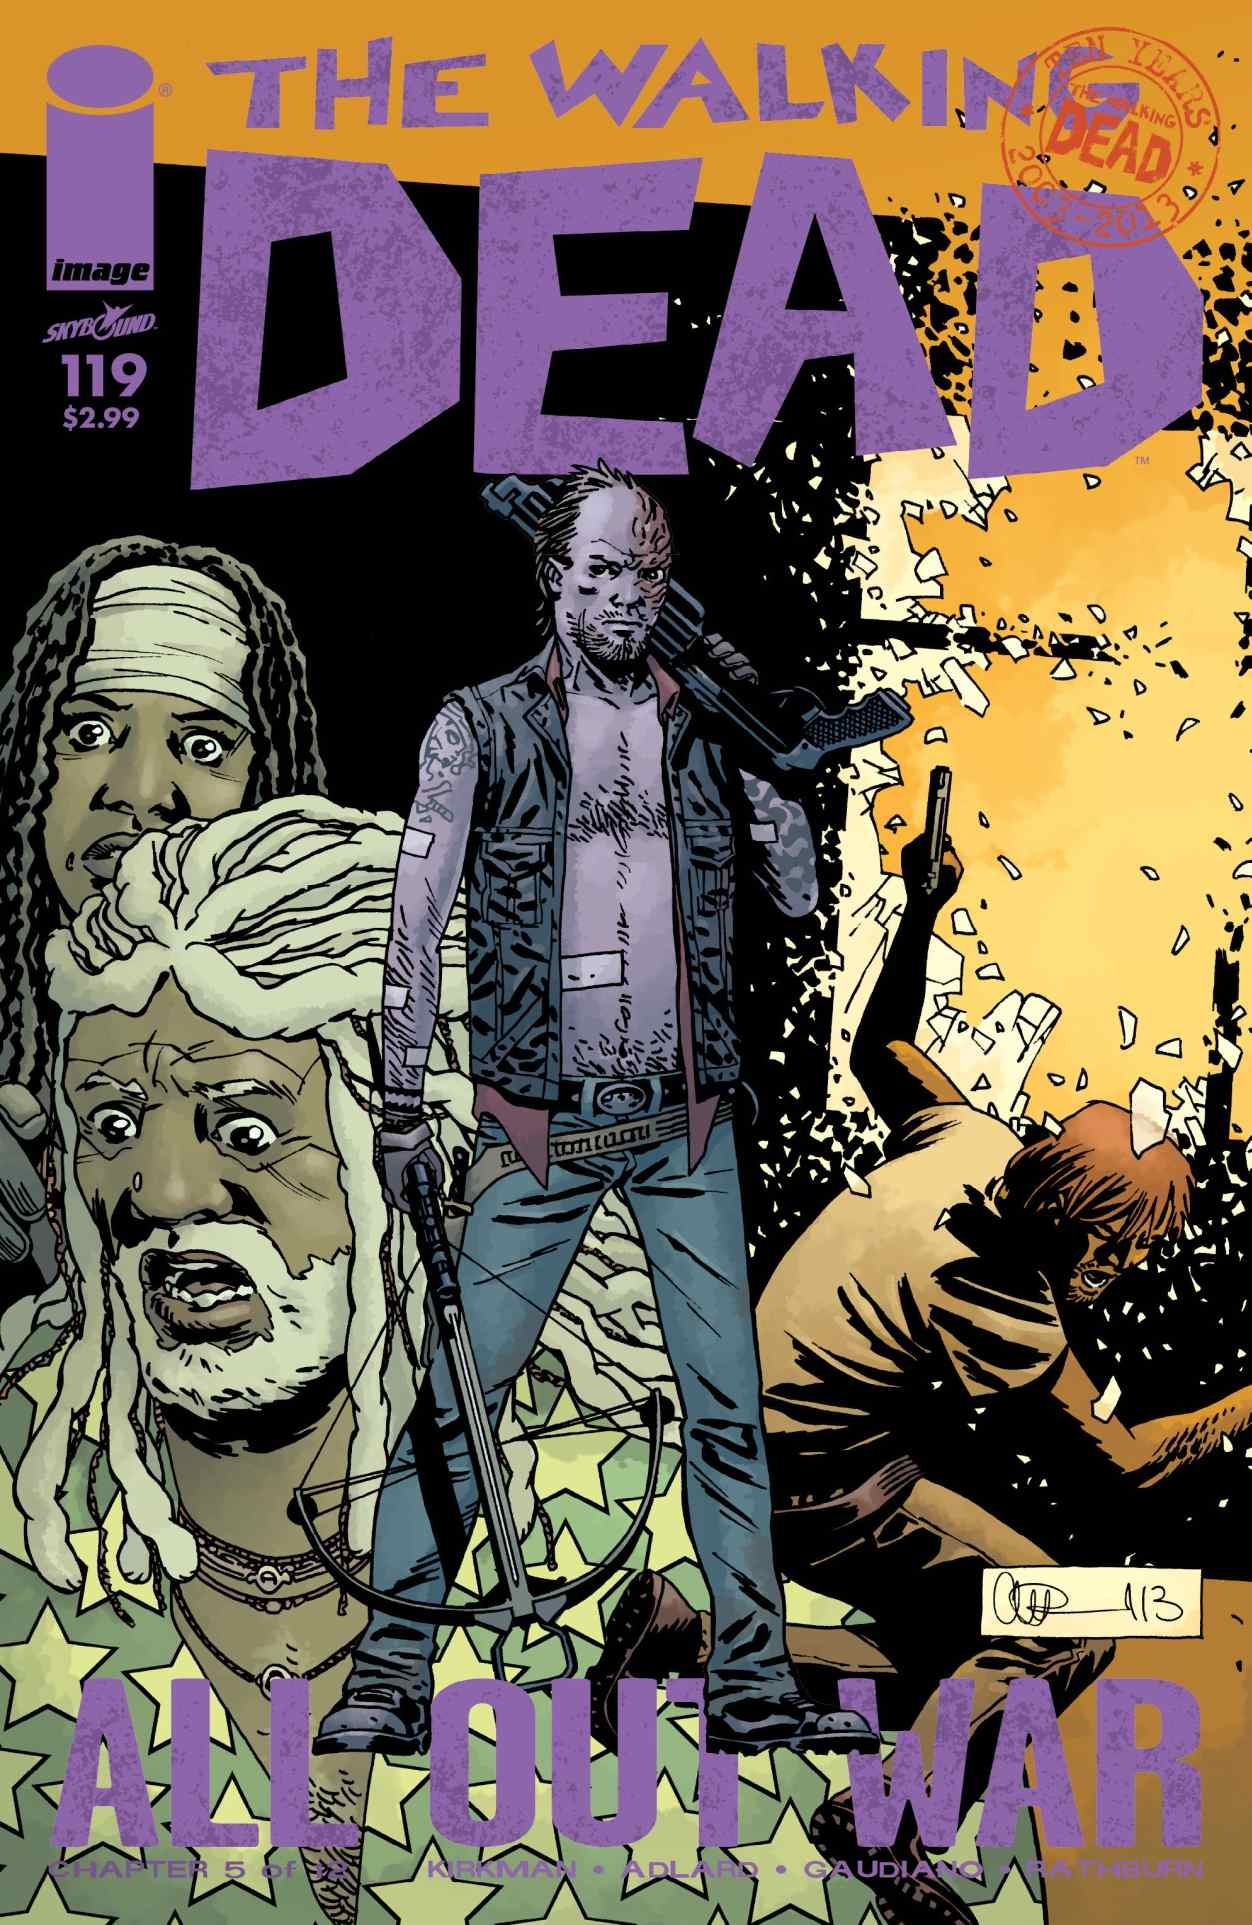 Read Comics Online Free - The Walking Dead - Chapter 119 - Page 1